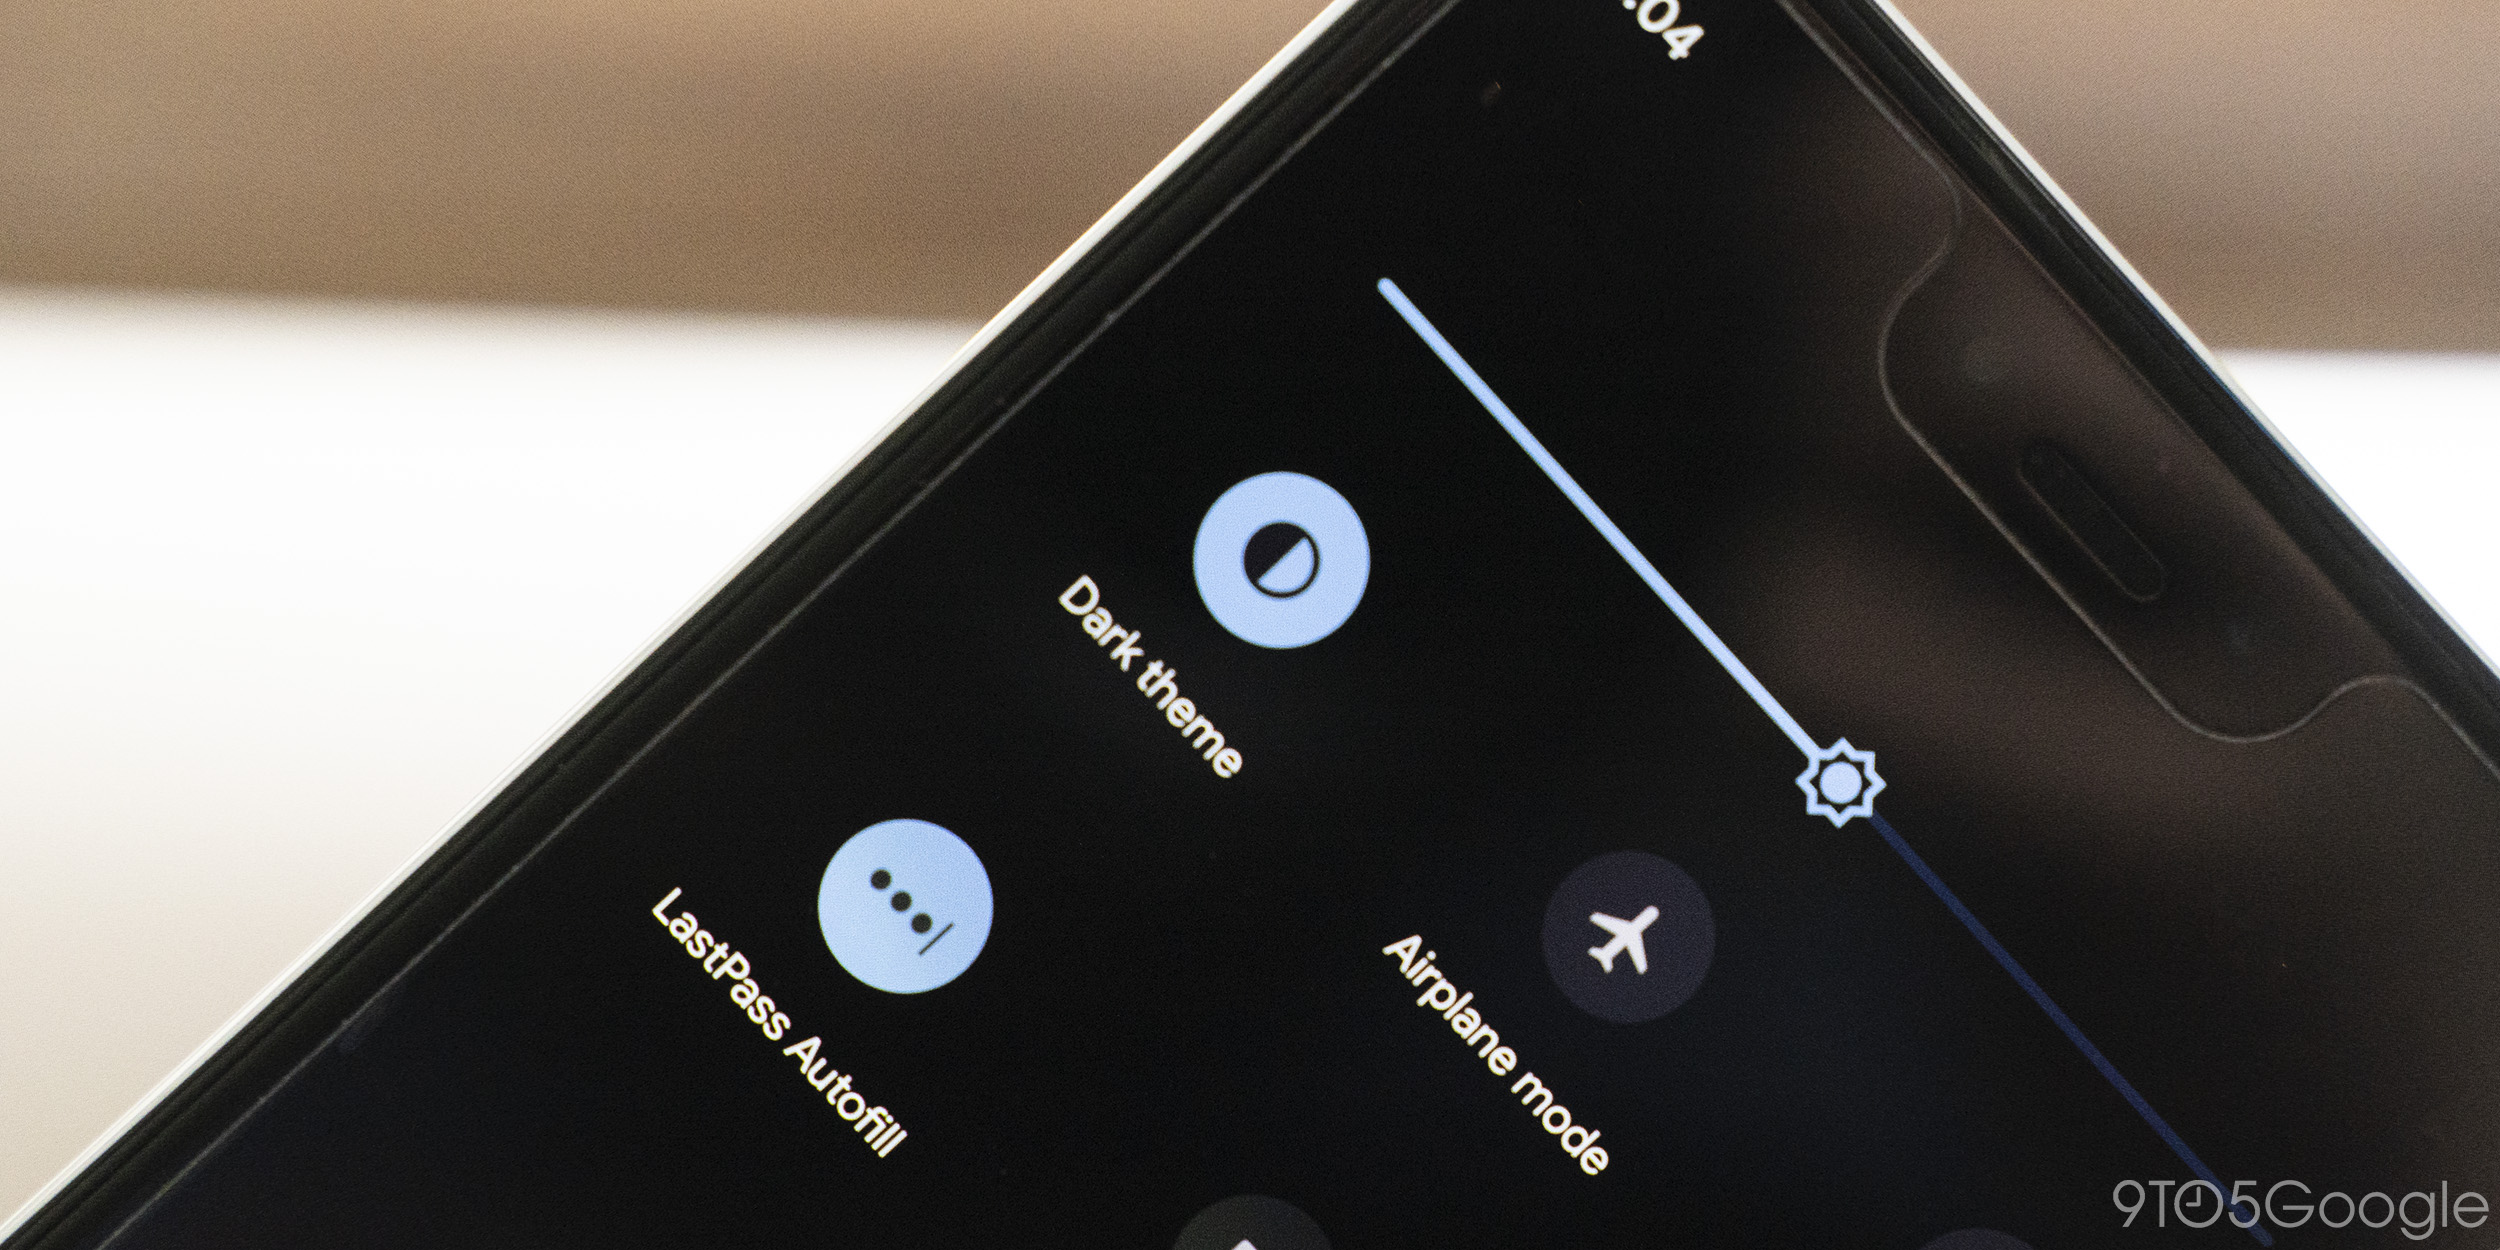 How To Change Android 10 S Wallpaper To Respect Dark Theme 9to5google